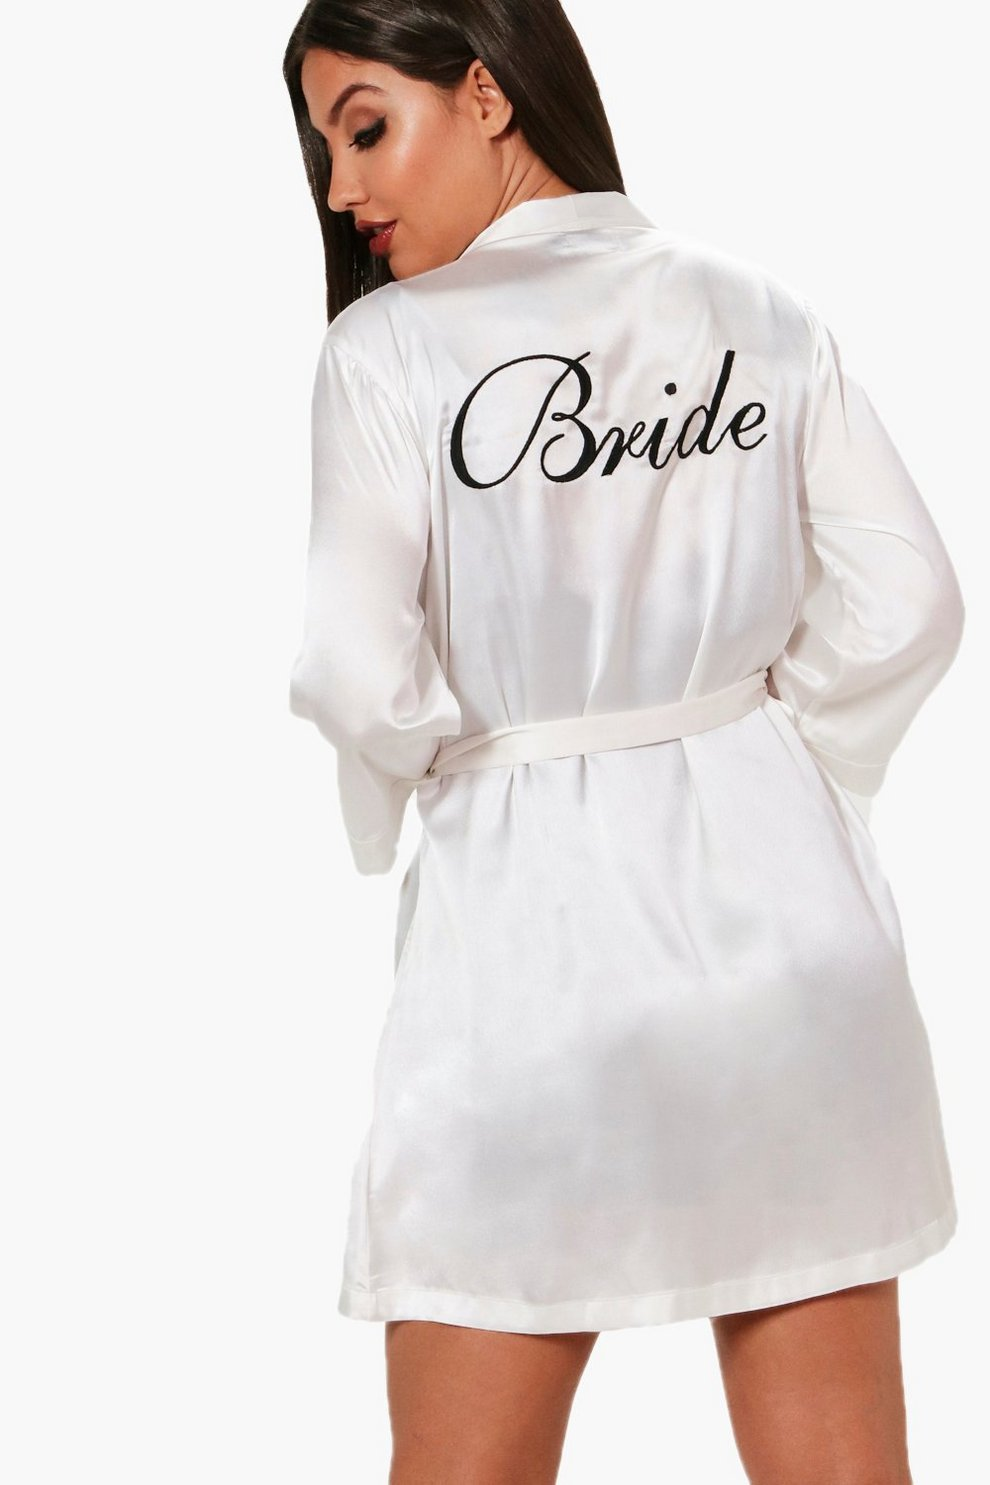 bright in luster hottest sale buy online Bride' Satin Robe | Boohoo